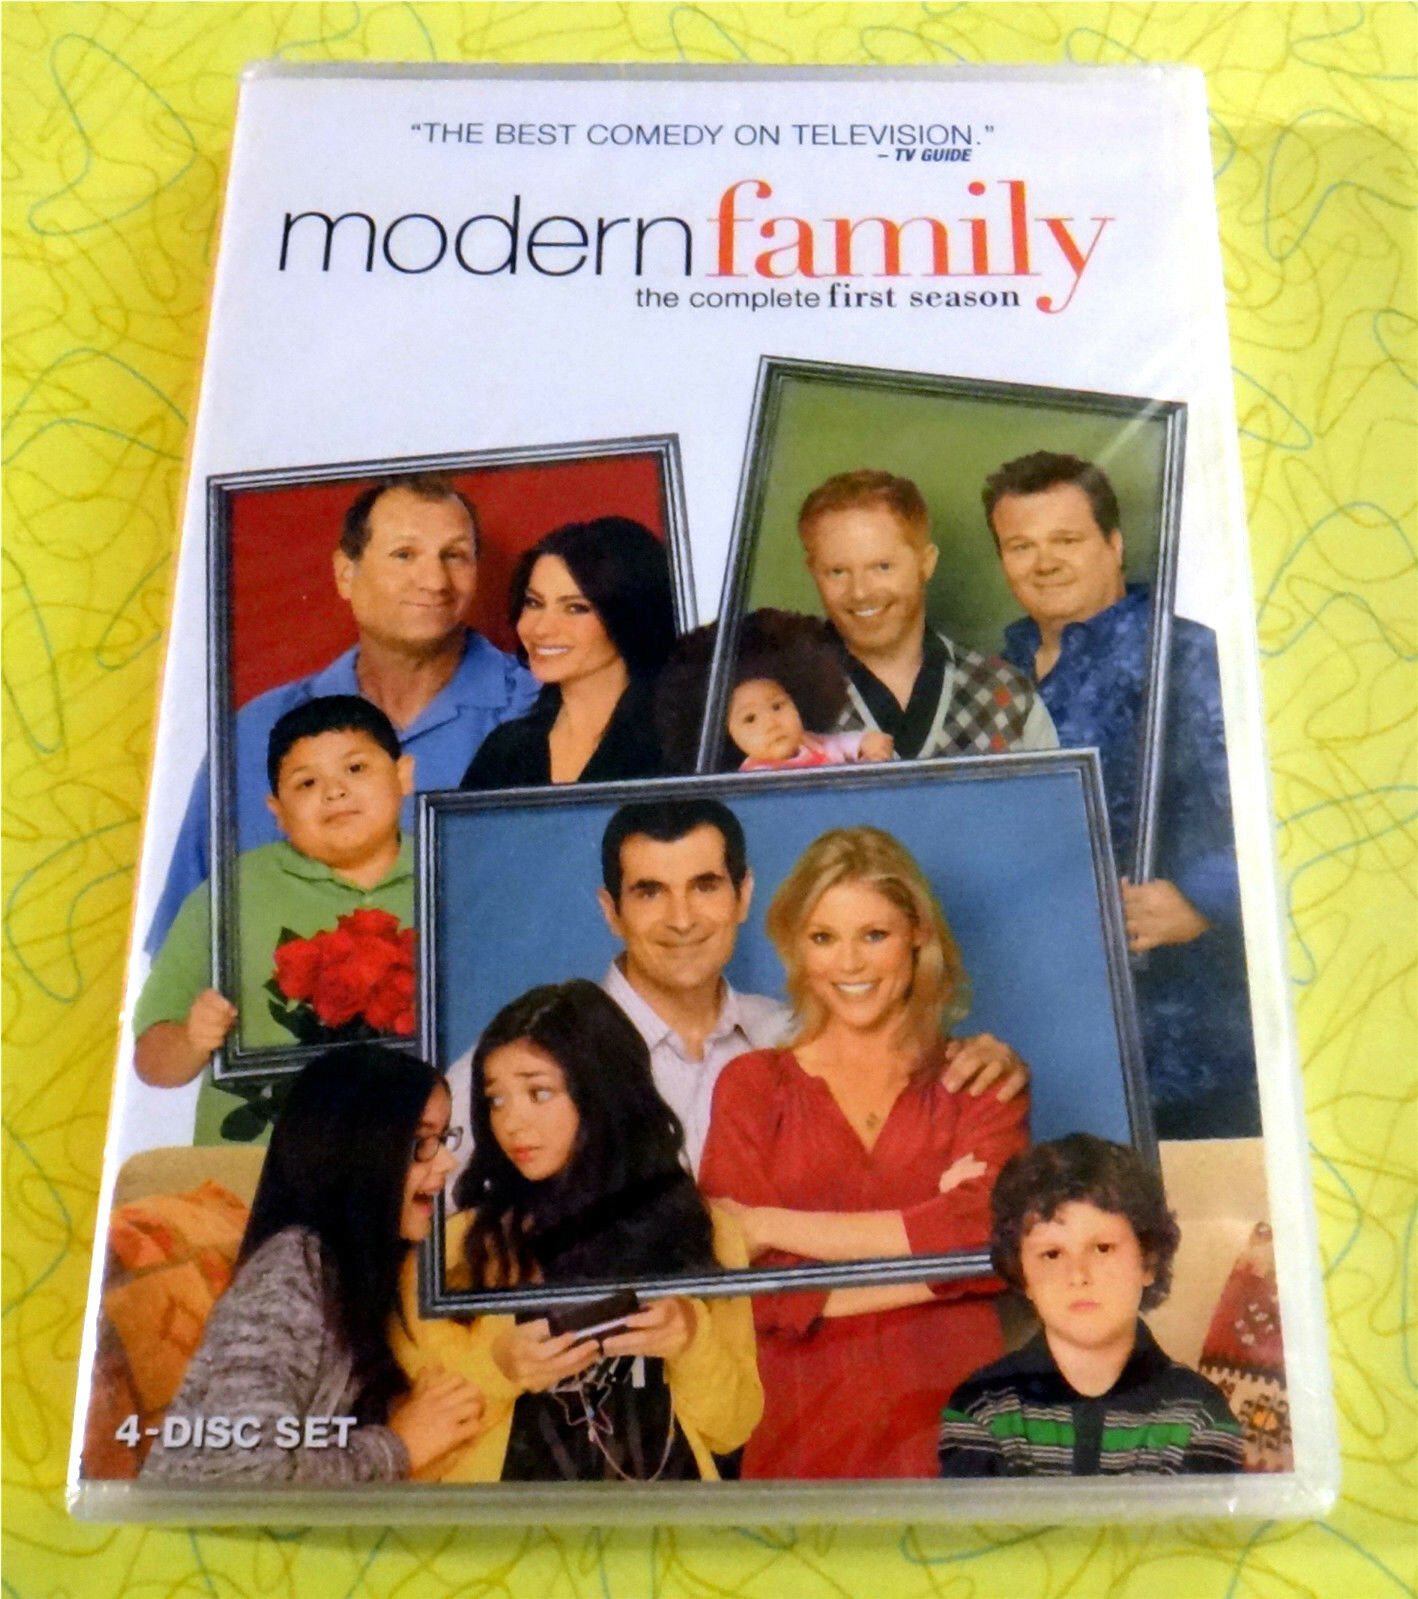 Modern Family: The Complete First Season 1 ~ New DVD Set ~ Comedy TV Show